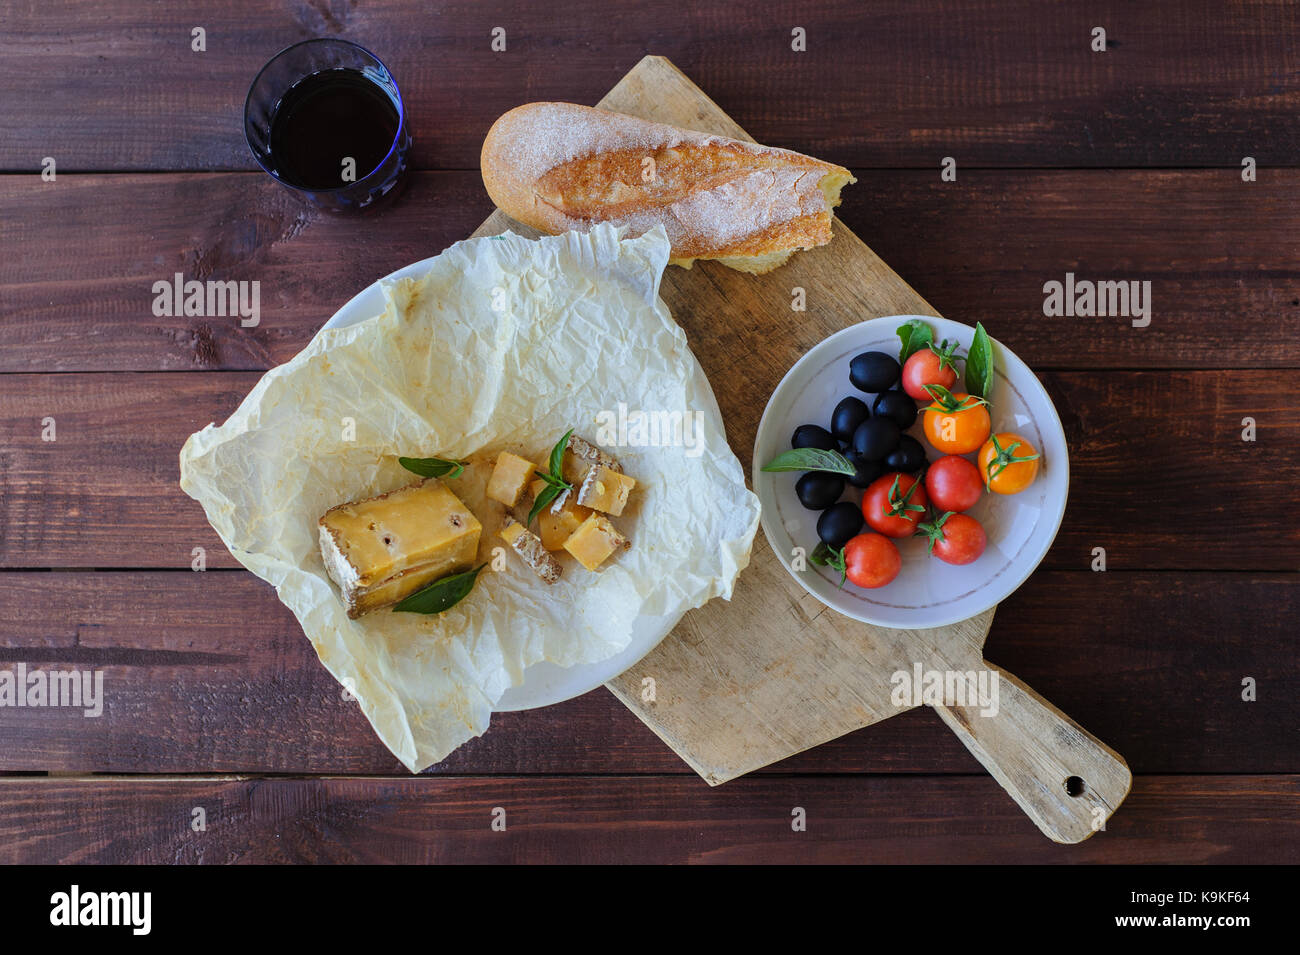 Piece of blue cheese, olives, and tomatoes close up - Stock Image